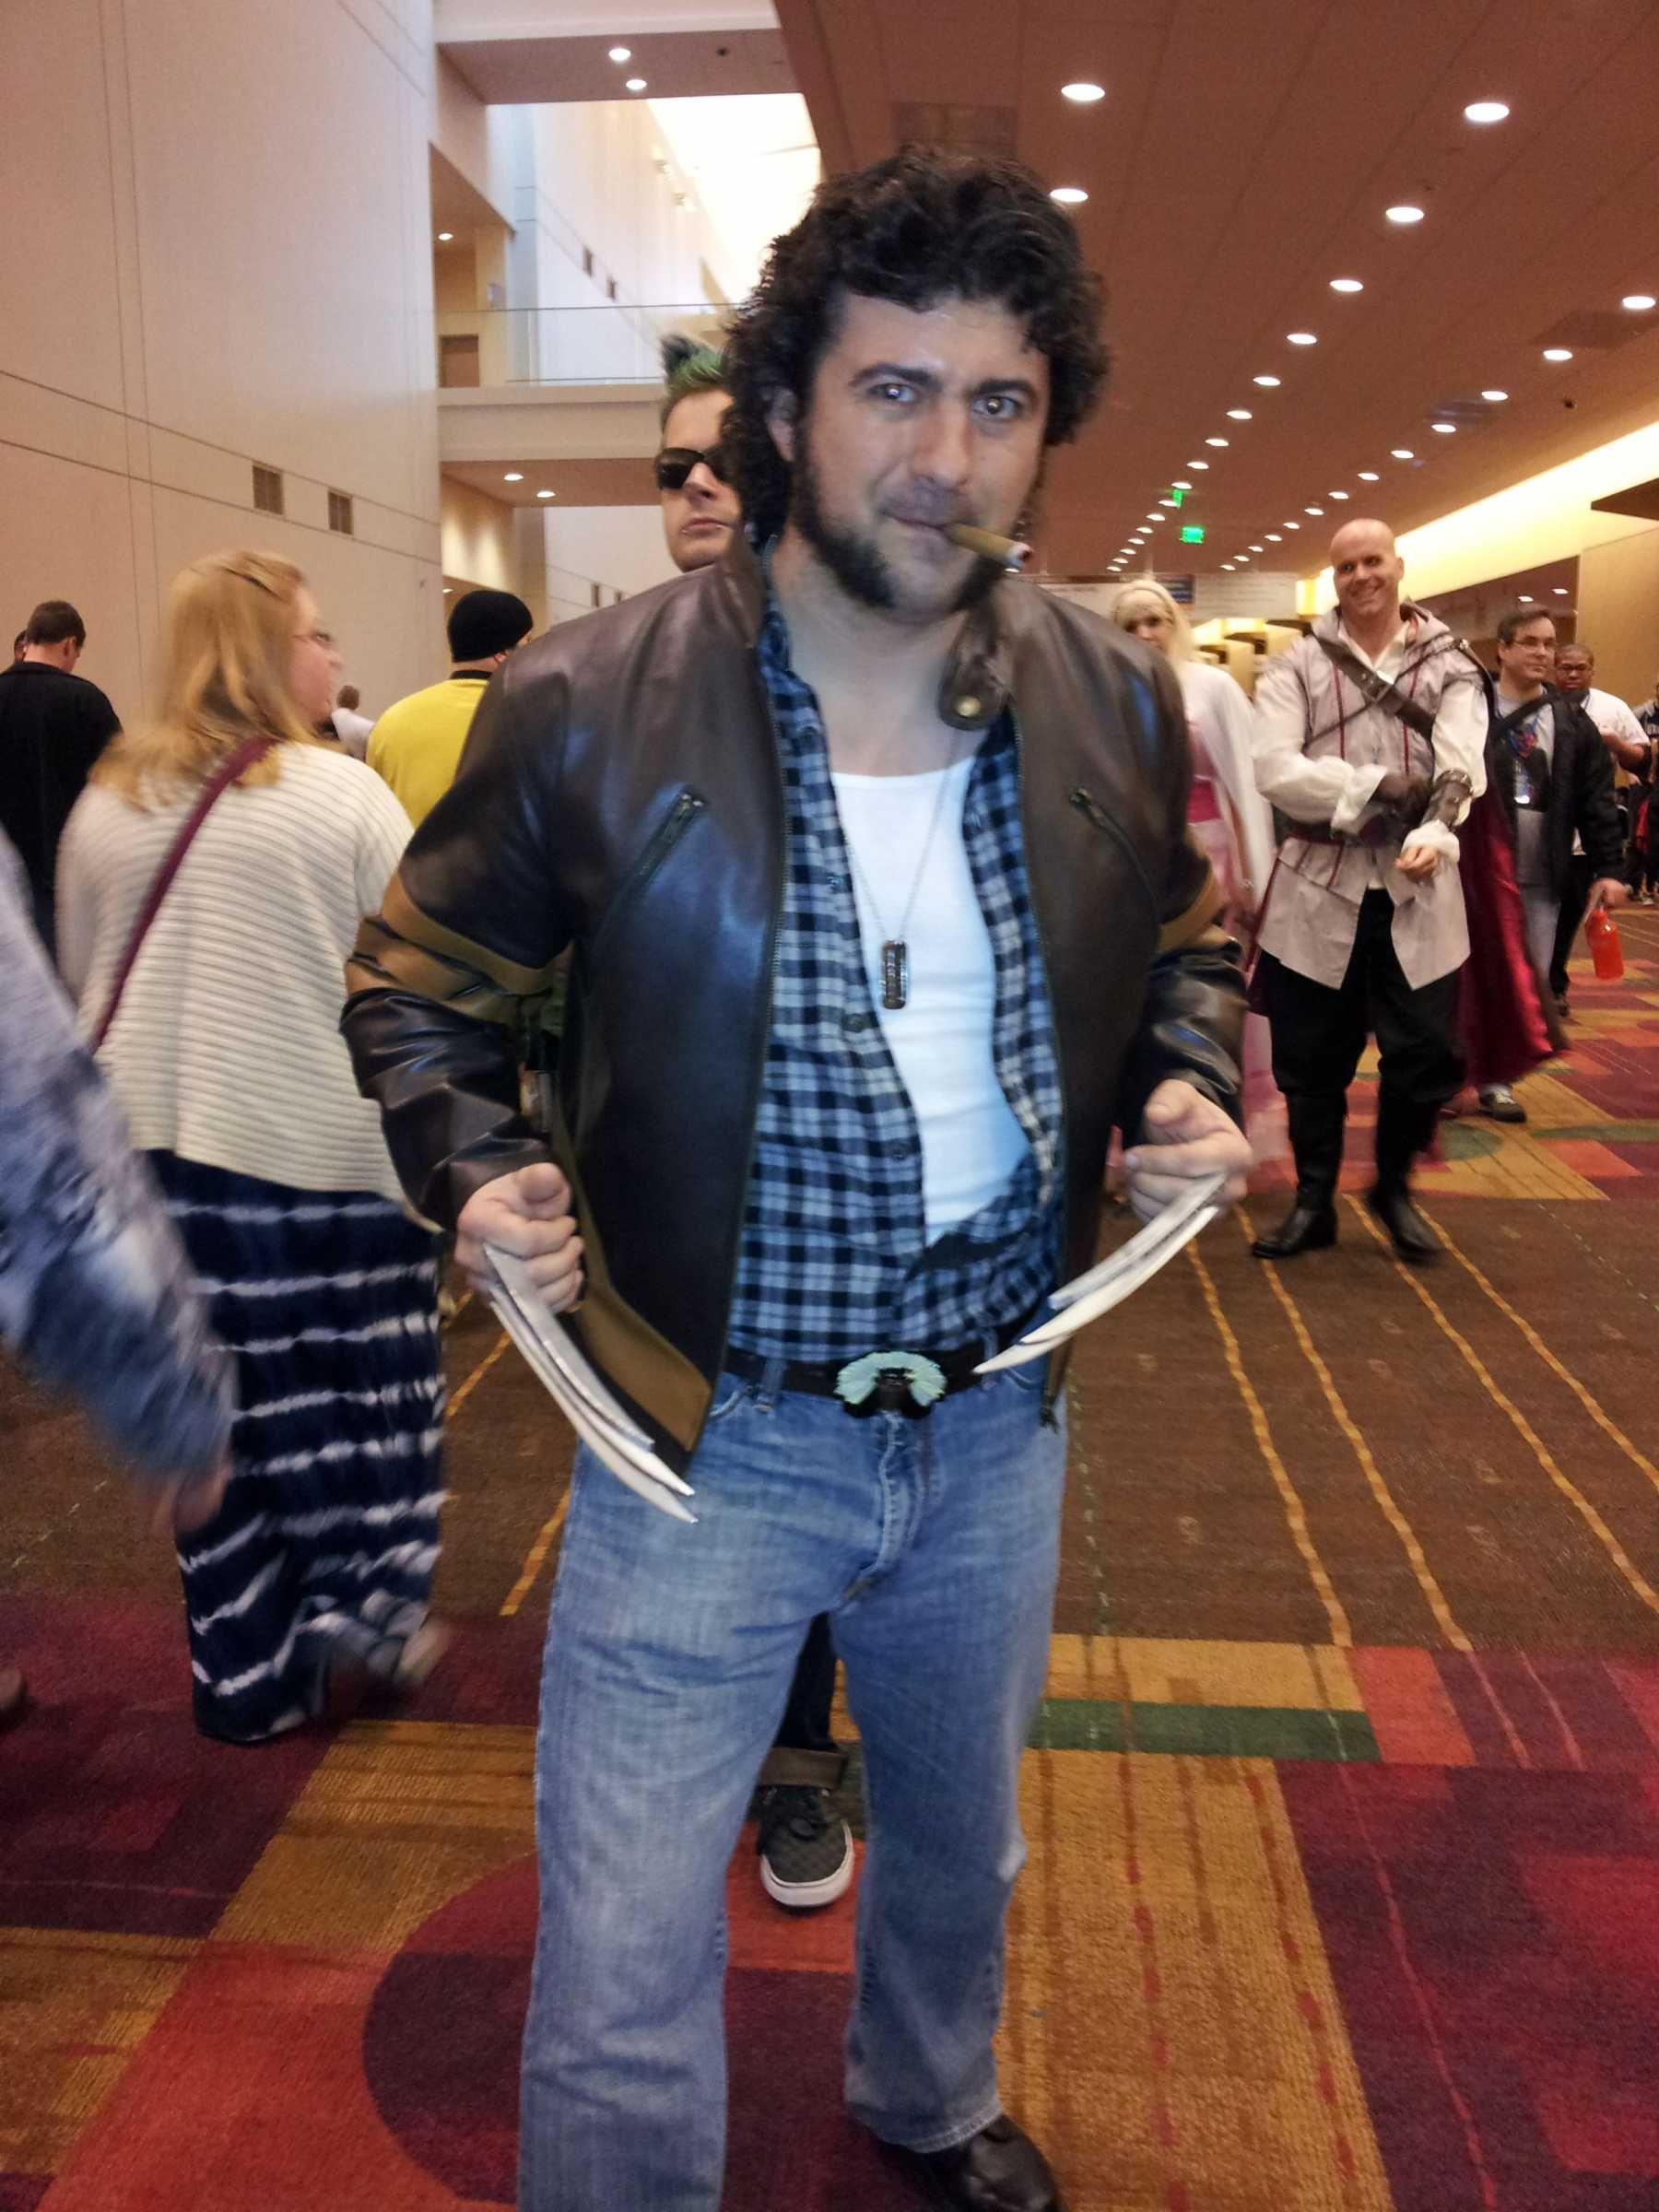 2015 Indiana Comic Con: Cosplay, Celebs And Comics In Hoosierland | comic con